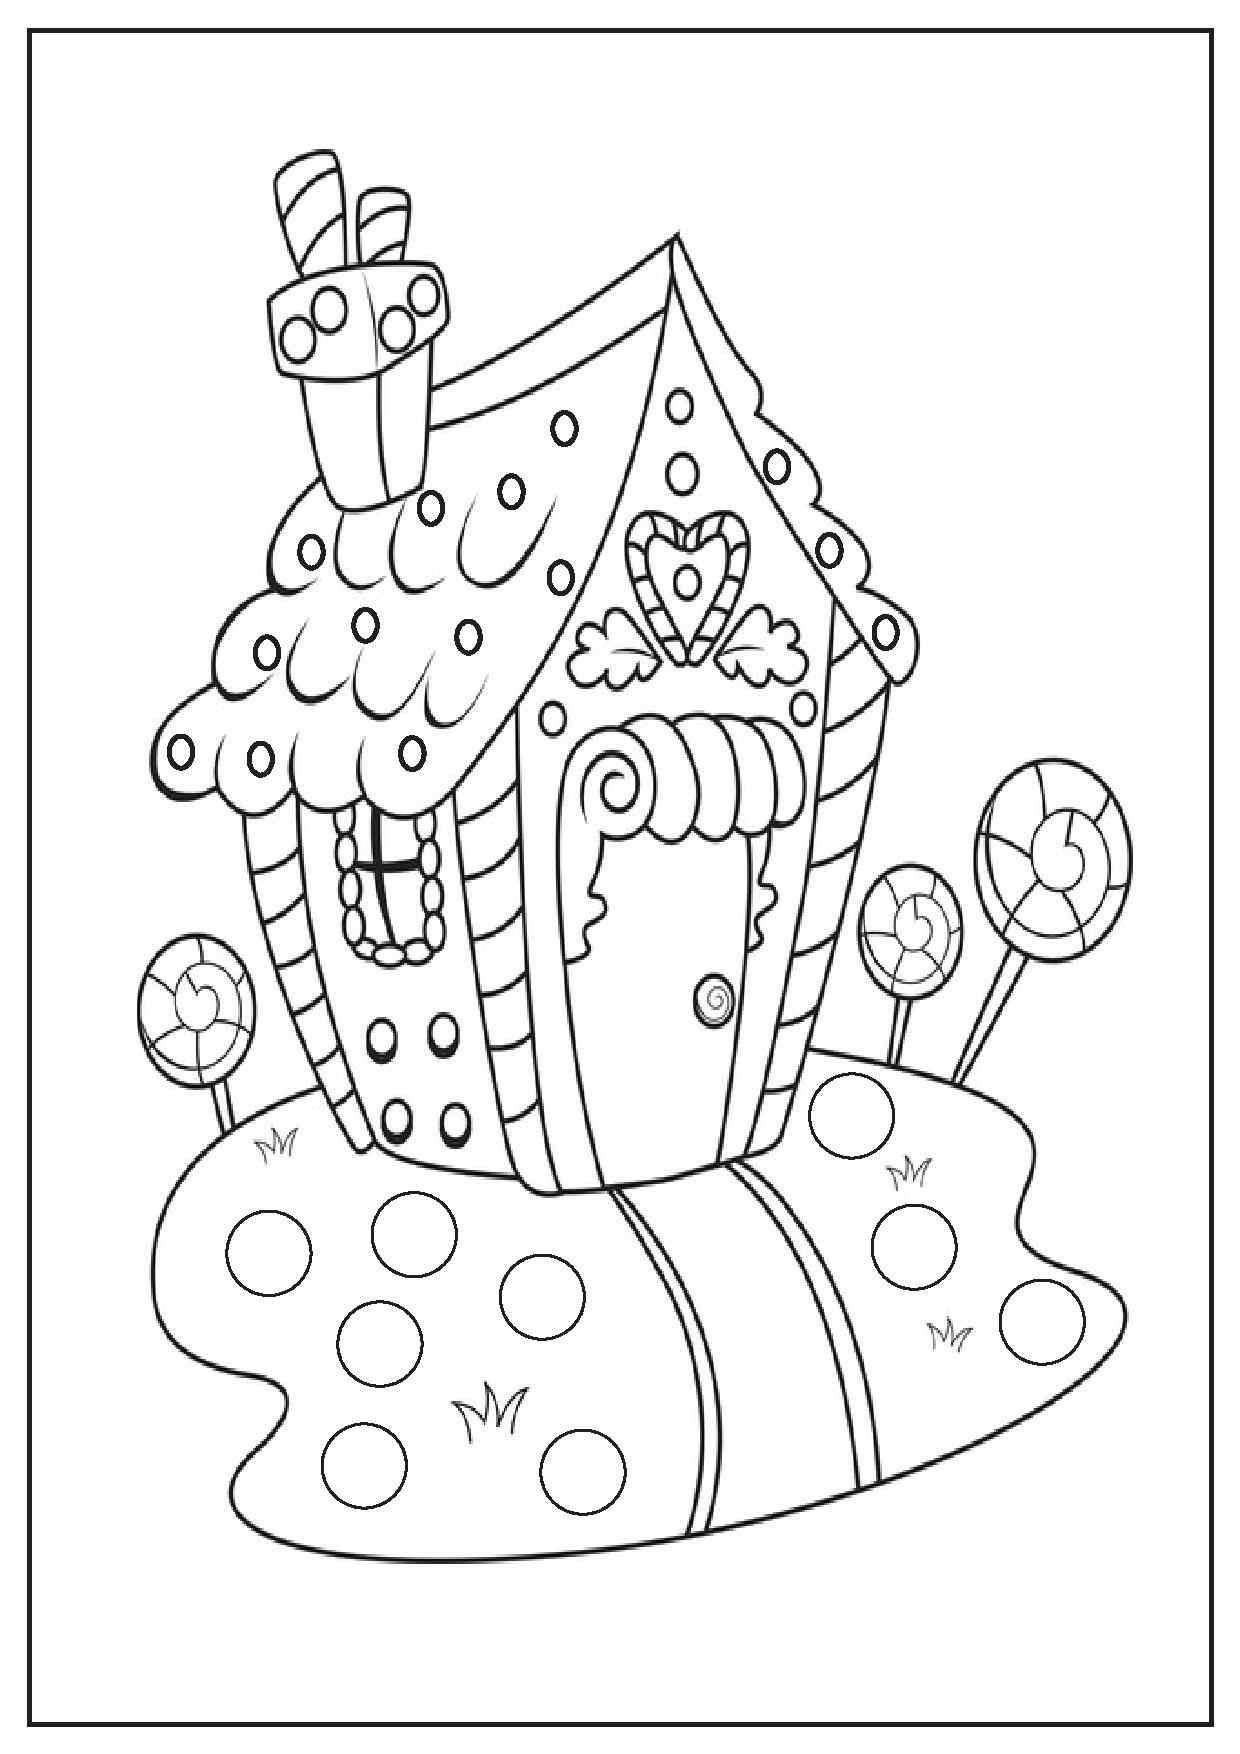 Free Coloring Pages: Christmas Ornaments Coloring Page | Free ... | 1754x1240